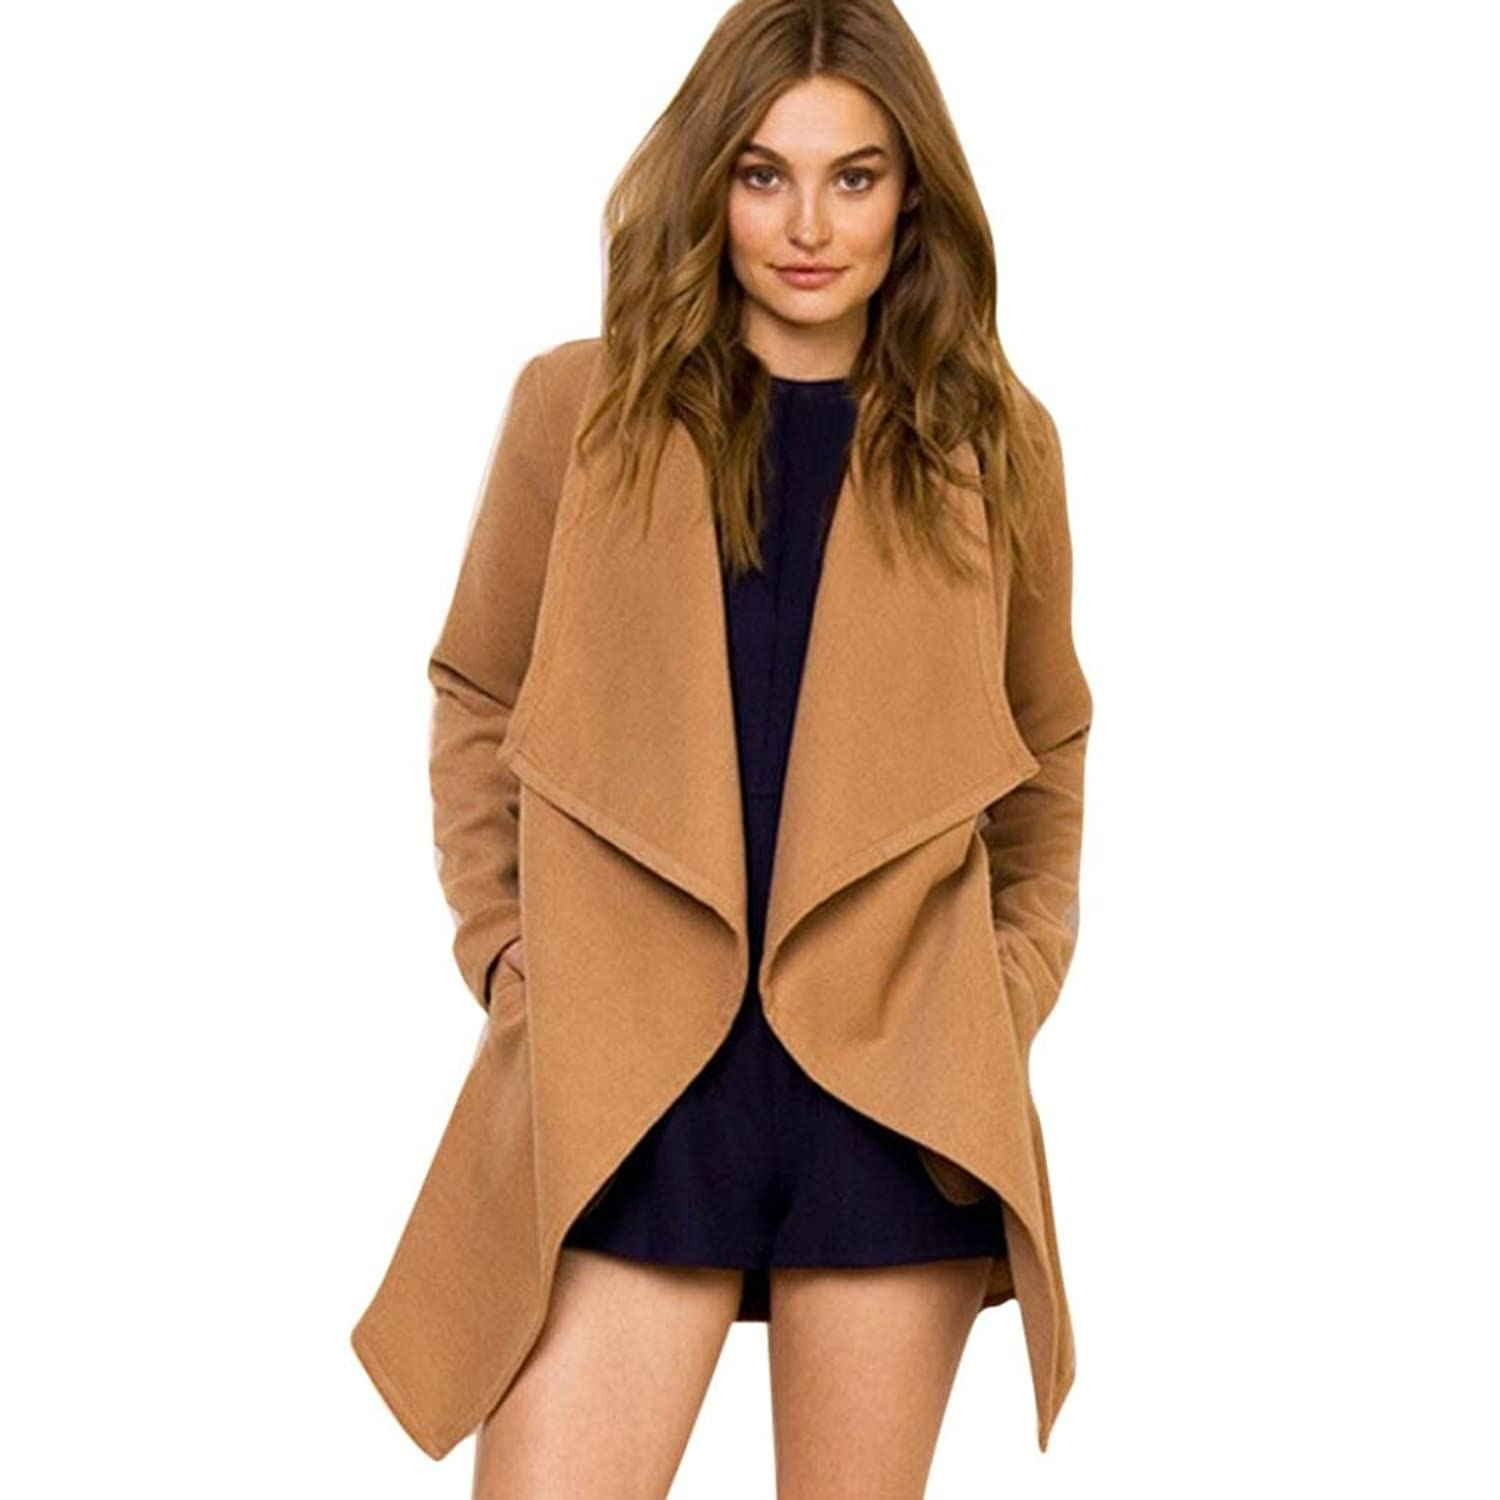 Perman Women's Ruffles Collar Coat Jacket Parka Outwear Cardigan Coat Sashes